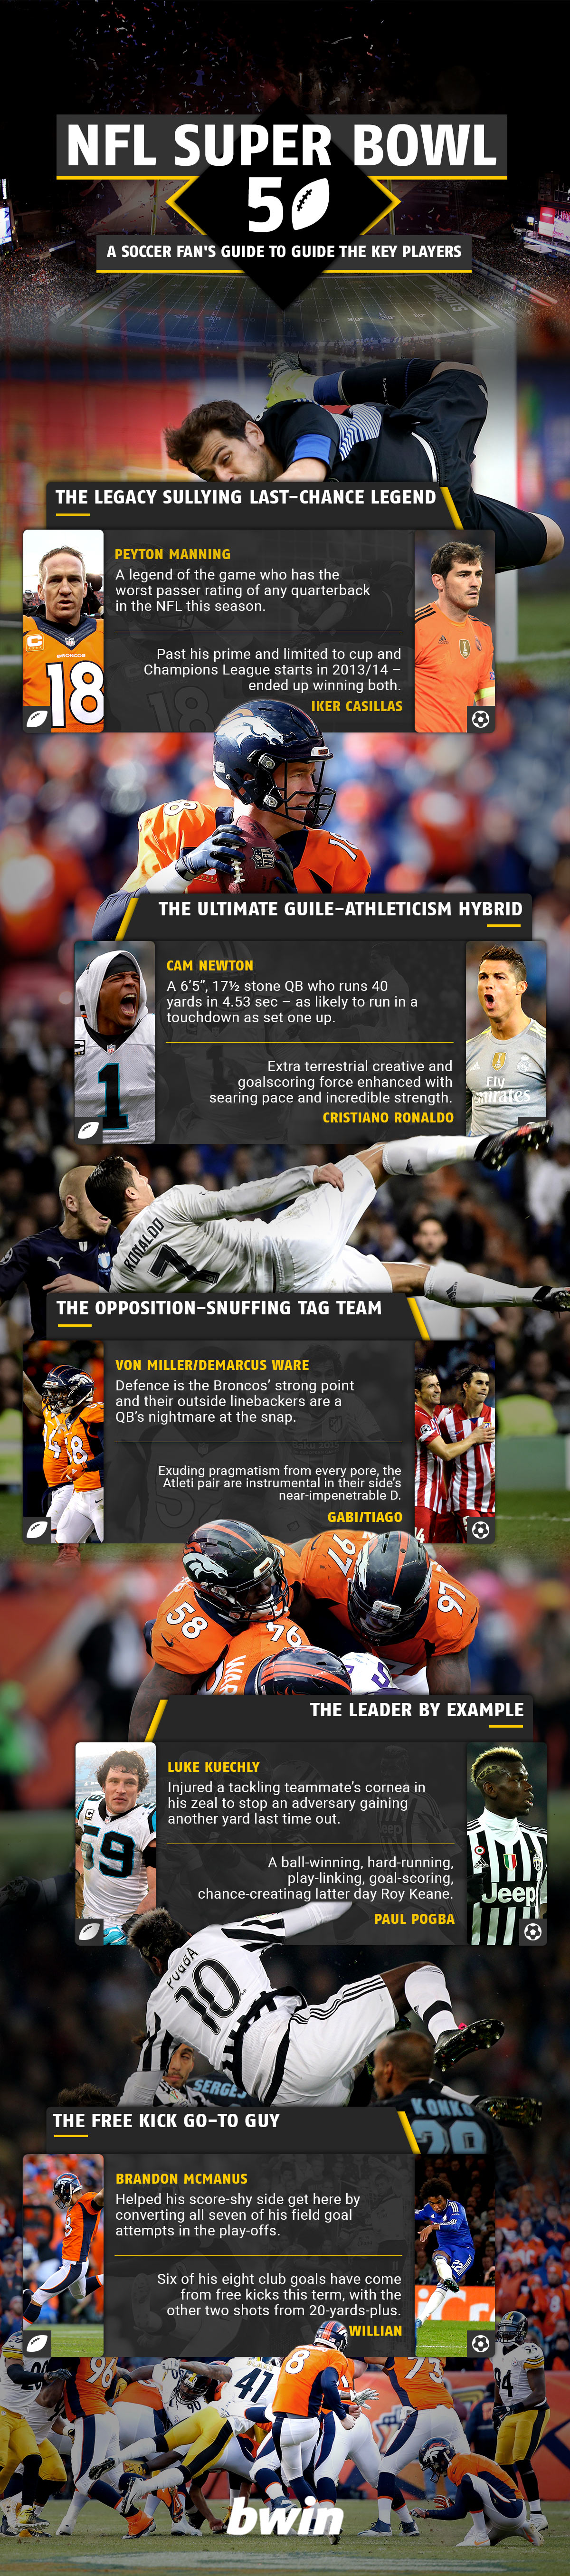 BWIN-Superbowl-football-parralell-v2